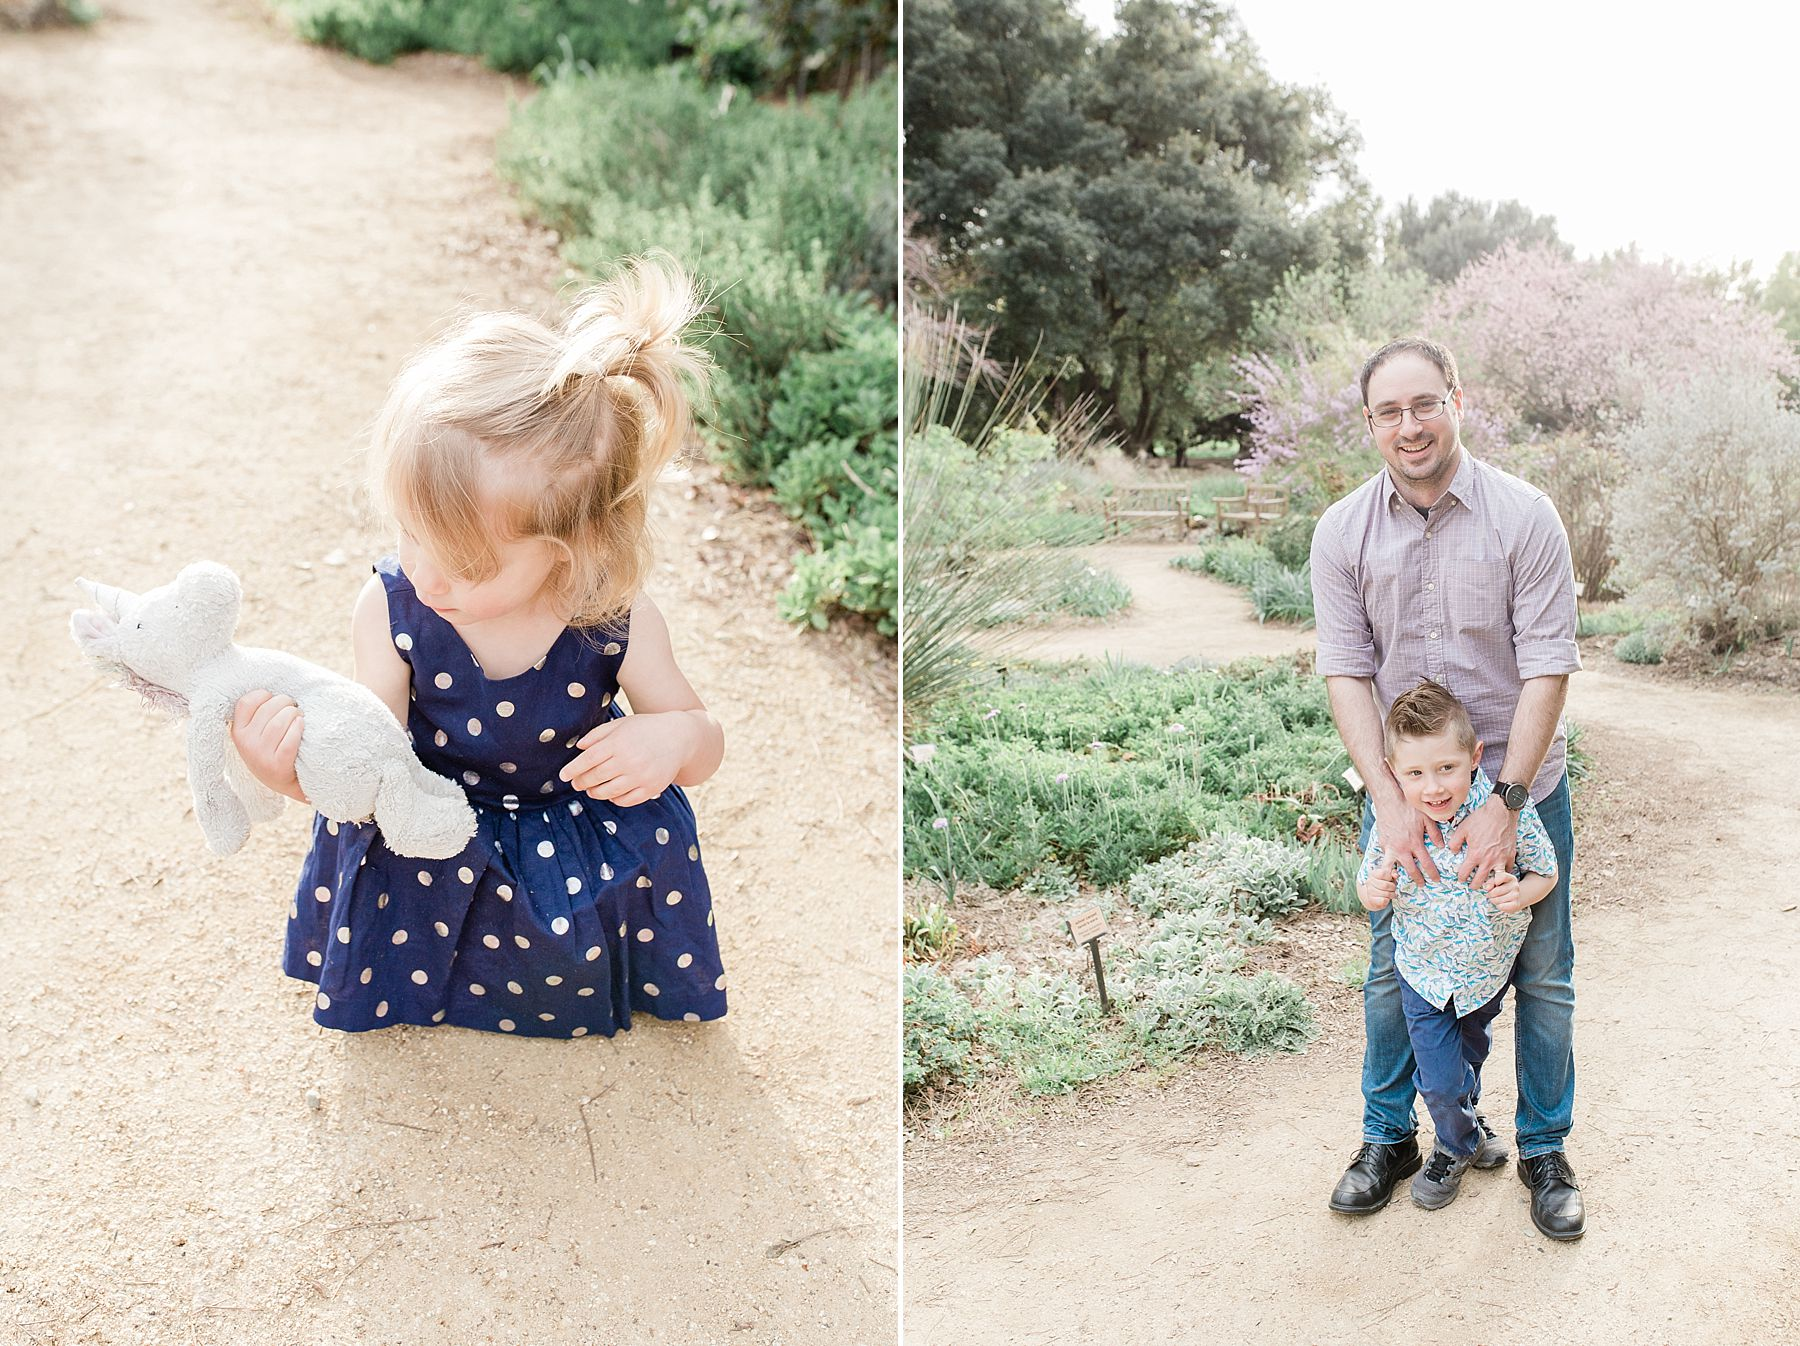 Davis Family Portraits at UC Davis Arboretum - Padovani Family - Ashley Baumgartner - Davis Family Photographer_0020.jpg